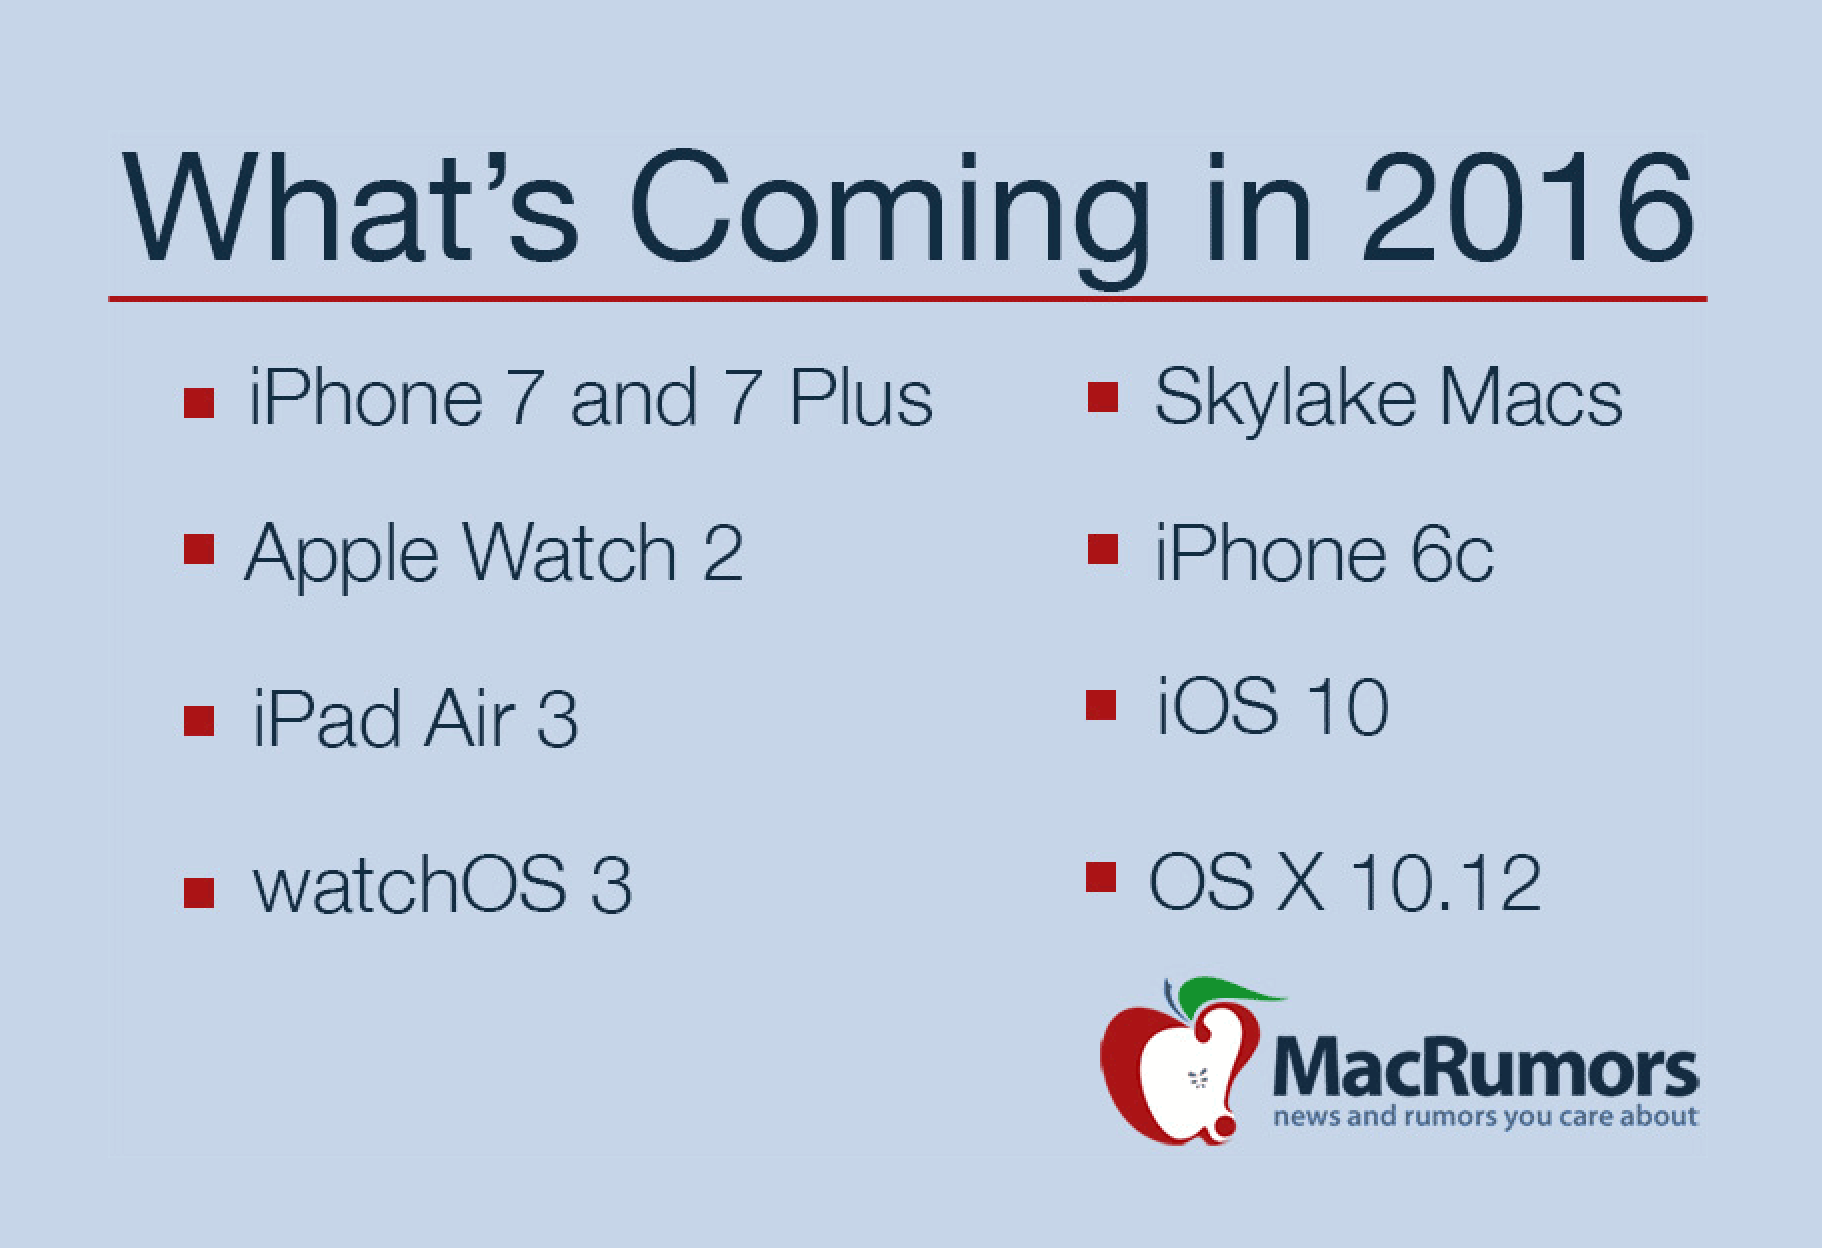 Apple products apple products png - What S Coming From Apple In 2016 Apple Watch 2 Iphone 6c Iphone 7 Skylake Macbooks And More Mac Rumors